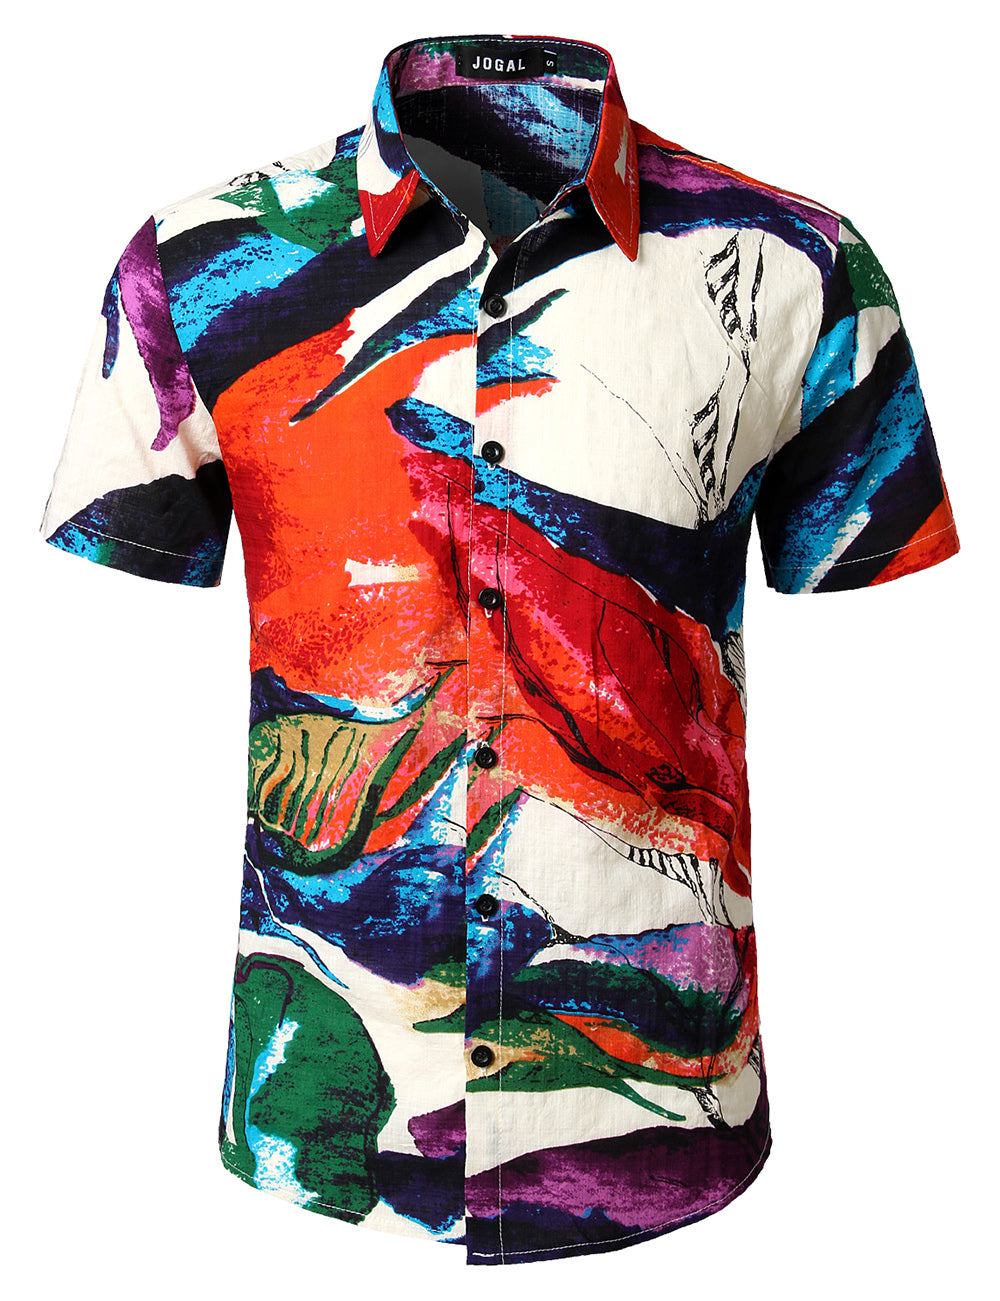 JOGAL Men's Flower Casual Button Down Short Sleeve Hawaiian Shirt(multicolored)